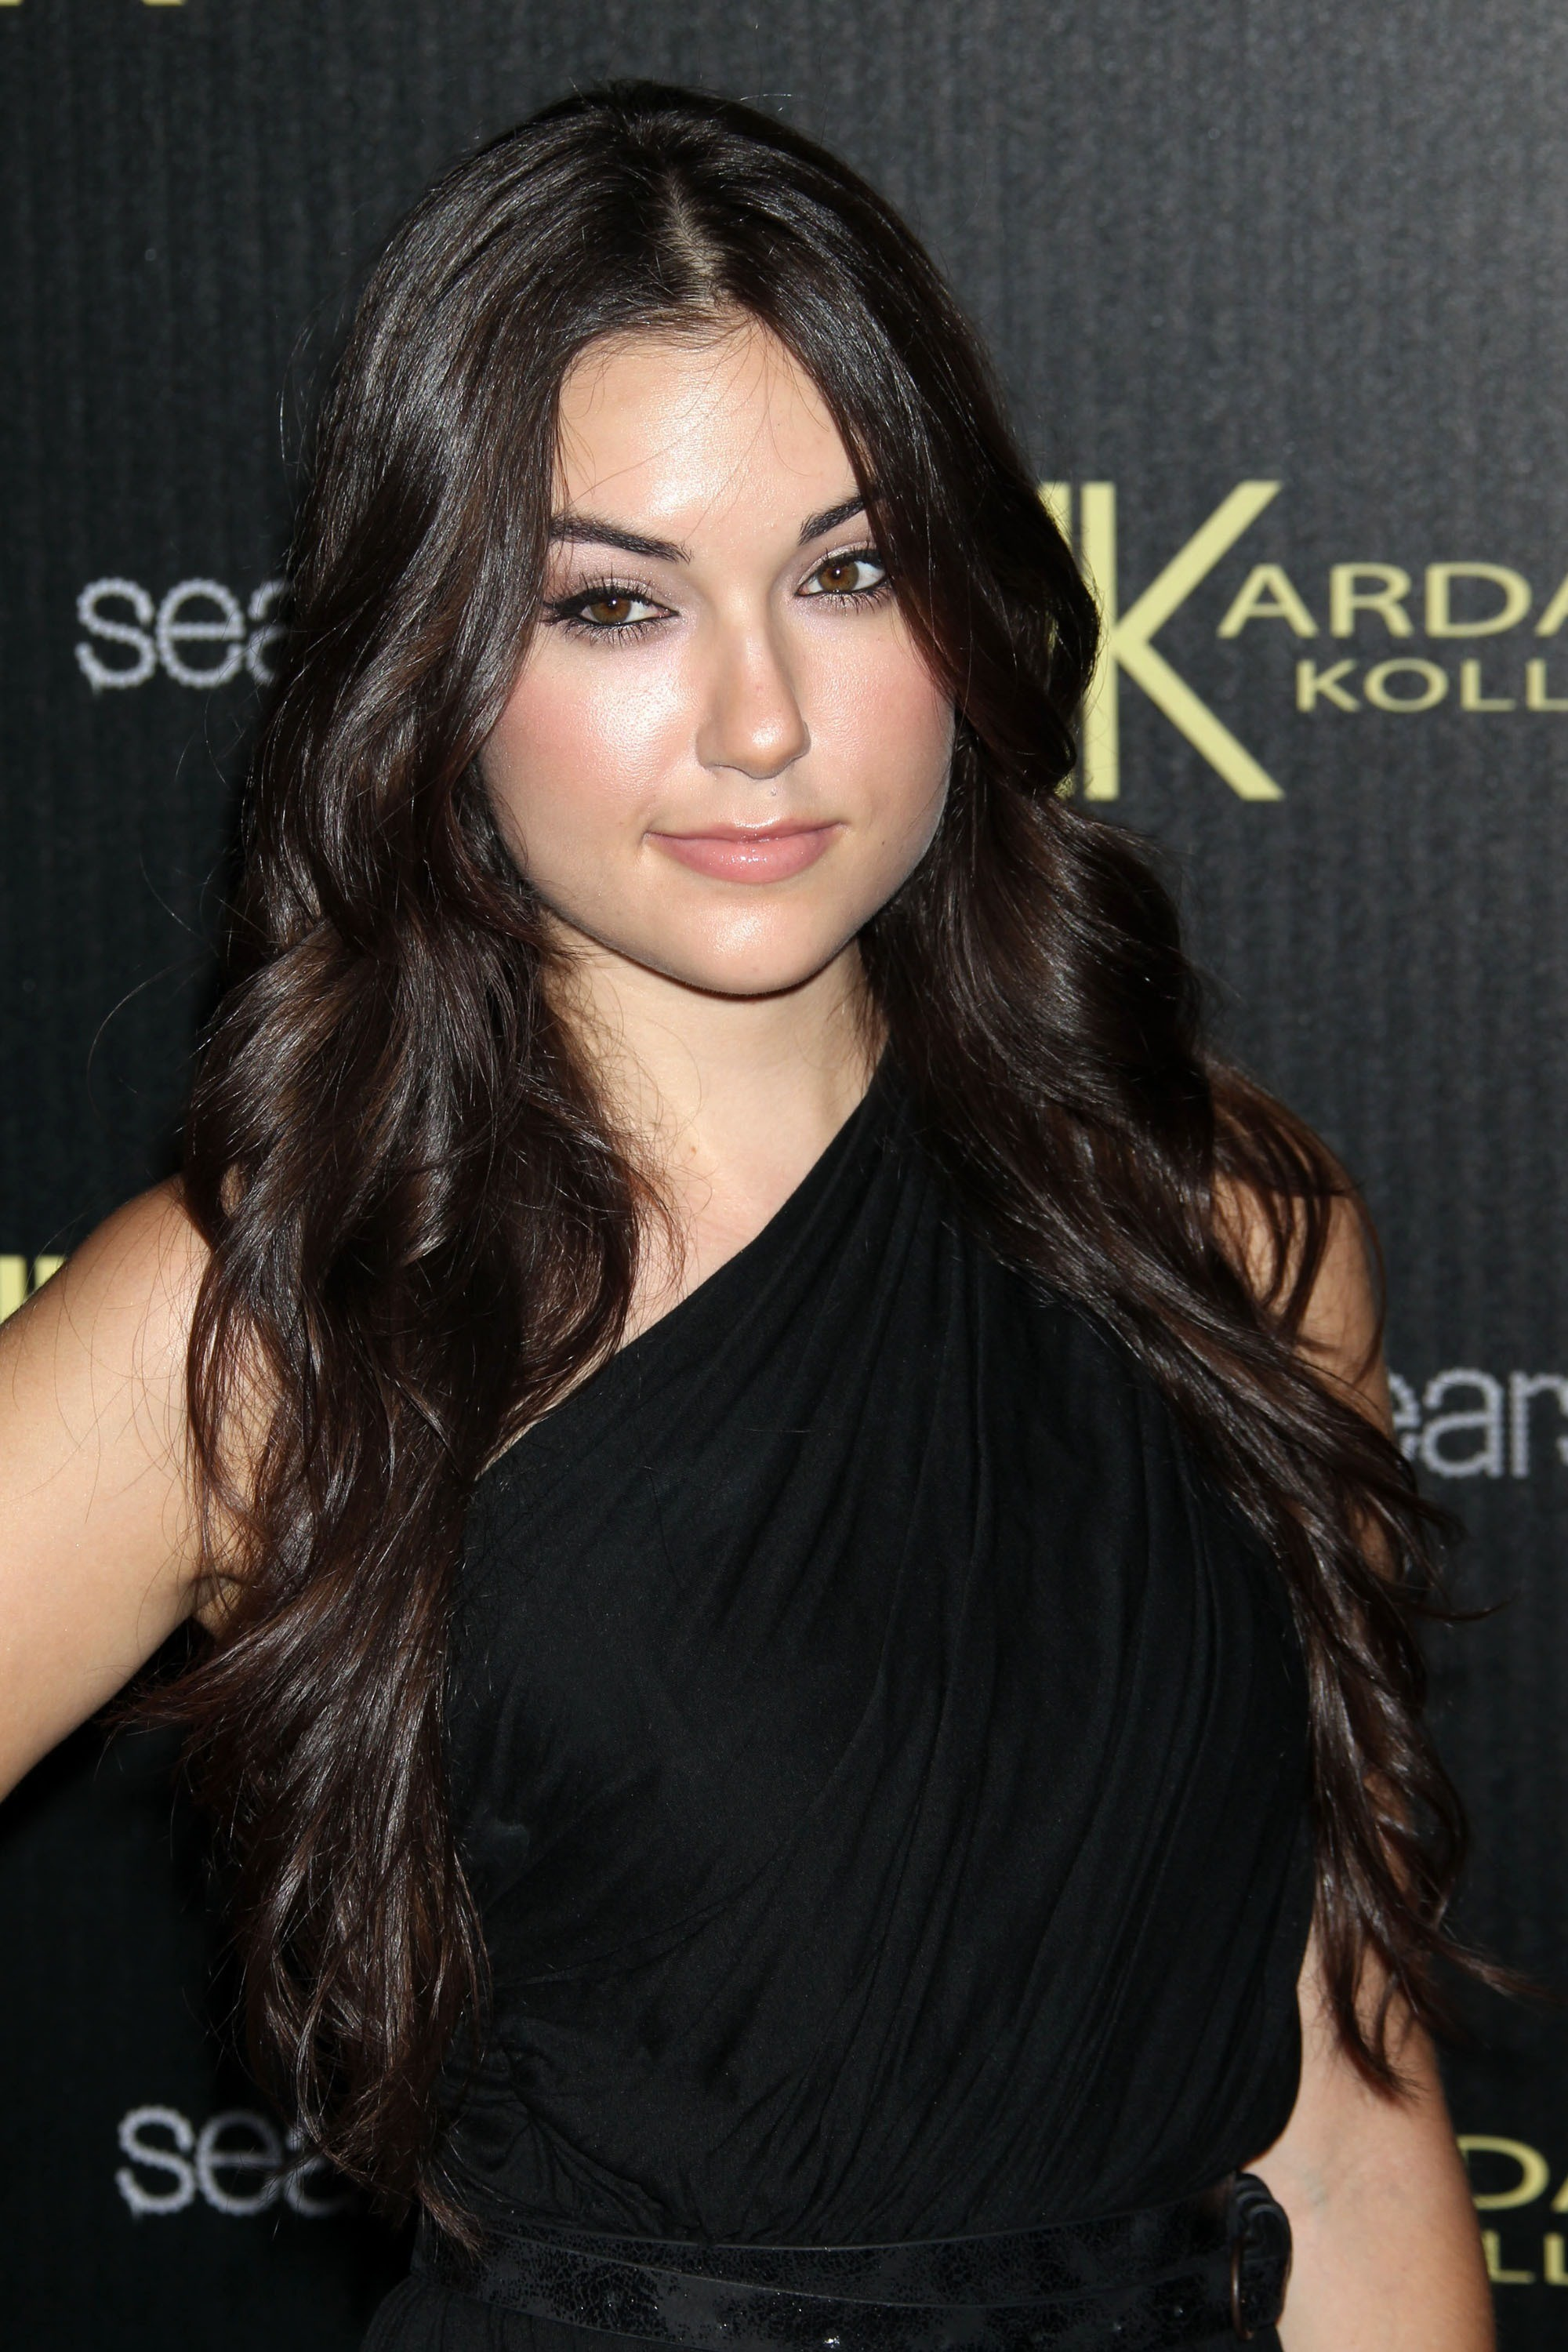 women, pornstars, party, Sasha Grey, Hollywood, launch – Free Wallpaper /  WallpaperJam.com